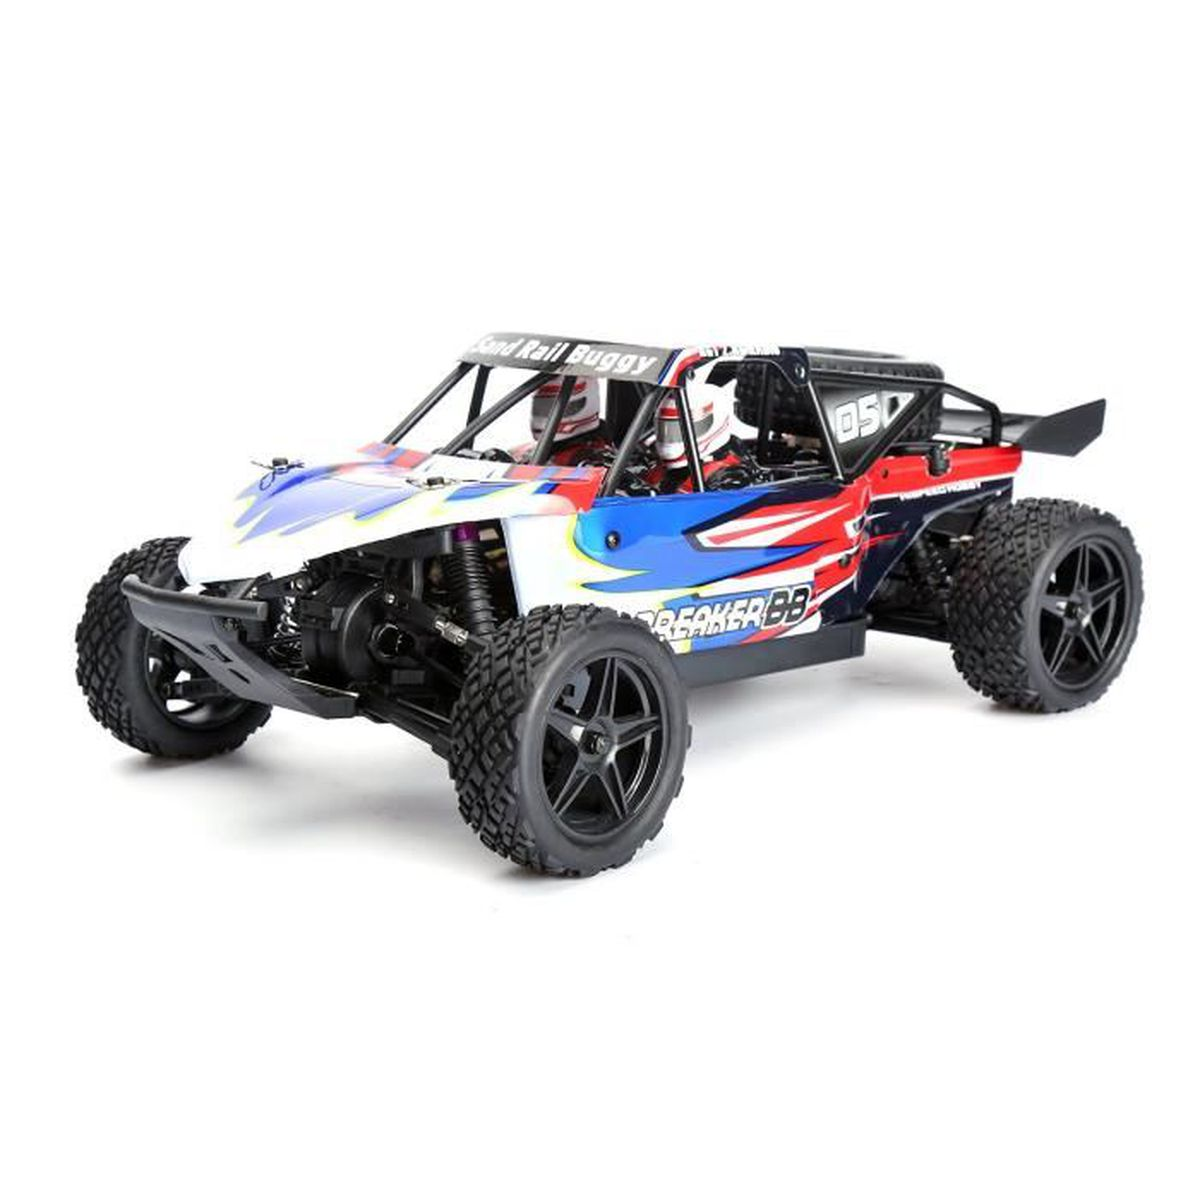 hsp rc voiture 1 10 chelle 4wd puissance lectrique buggy 94202 off road voiture t l command e. Black Bedroom Furniture Sets. Home Design Ideas